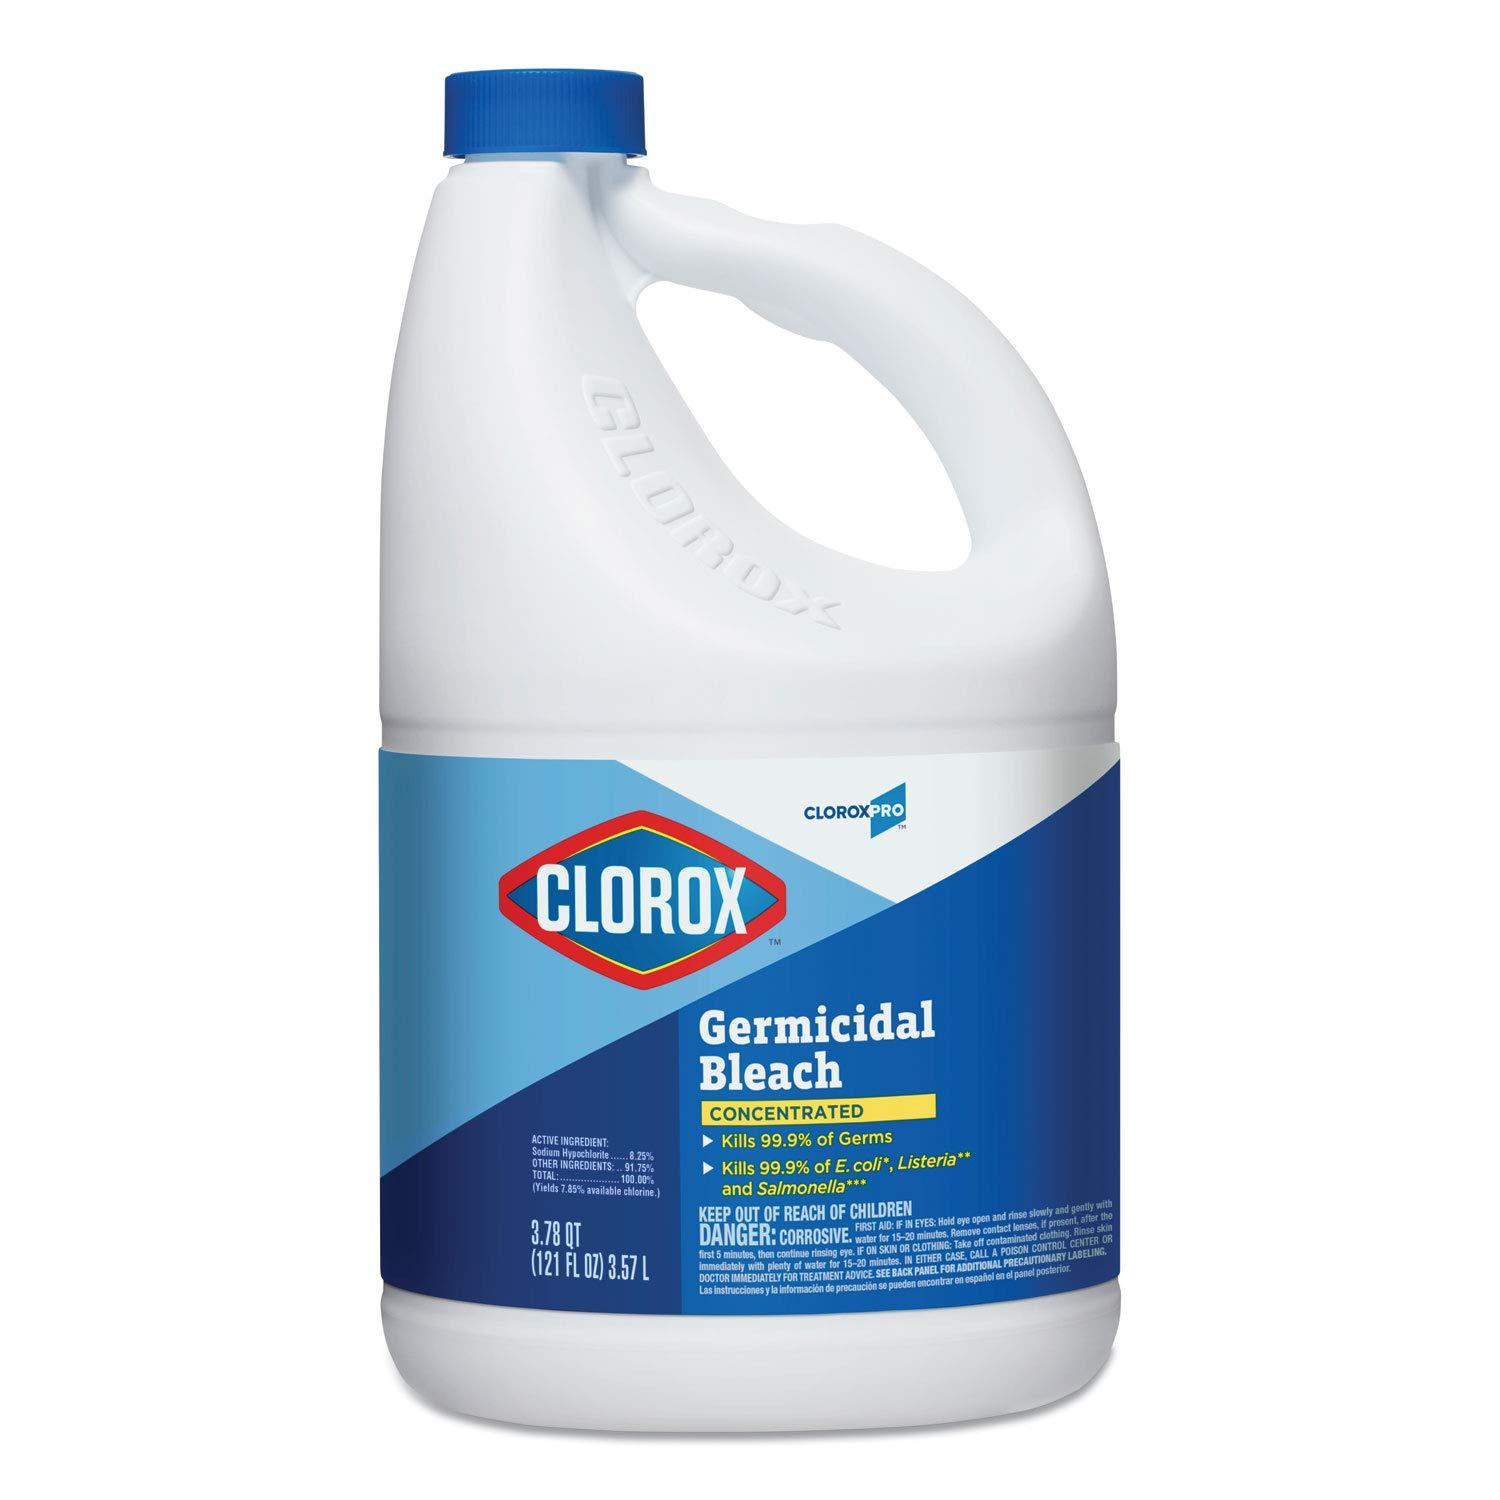 Clorox Concentrated Germicidal Bleach, Regular, 121 oz Bottle